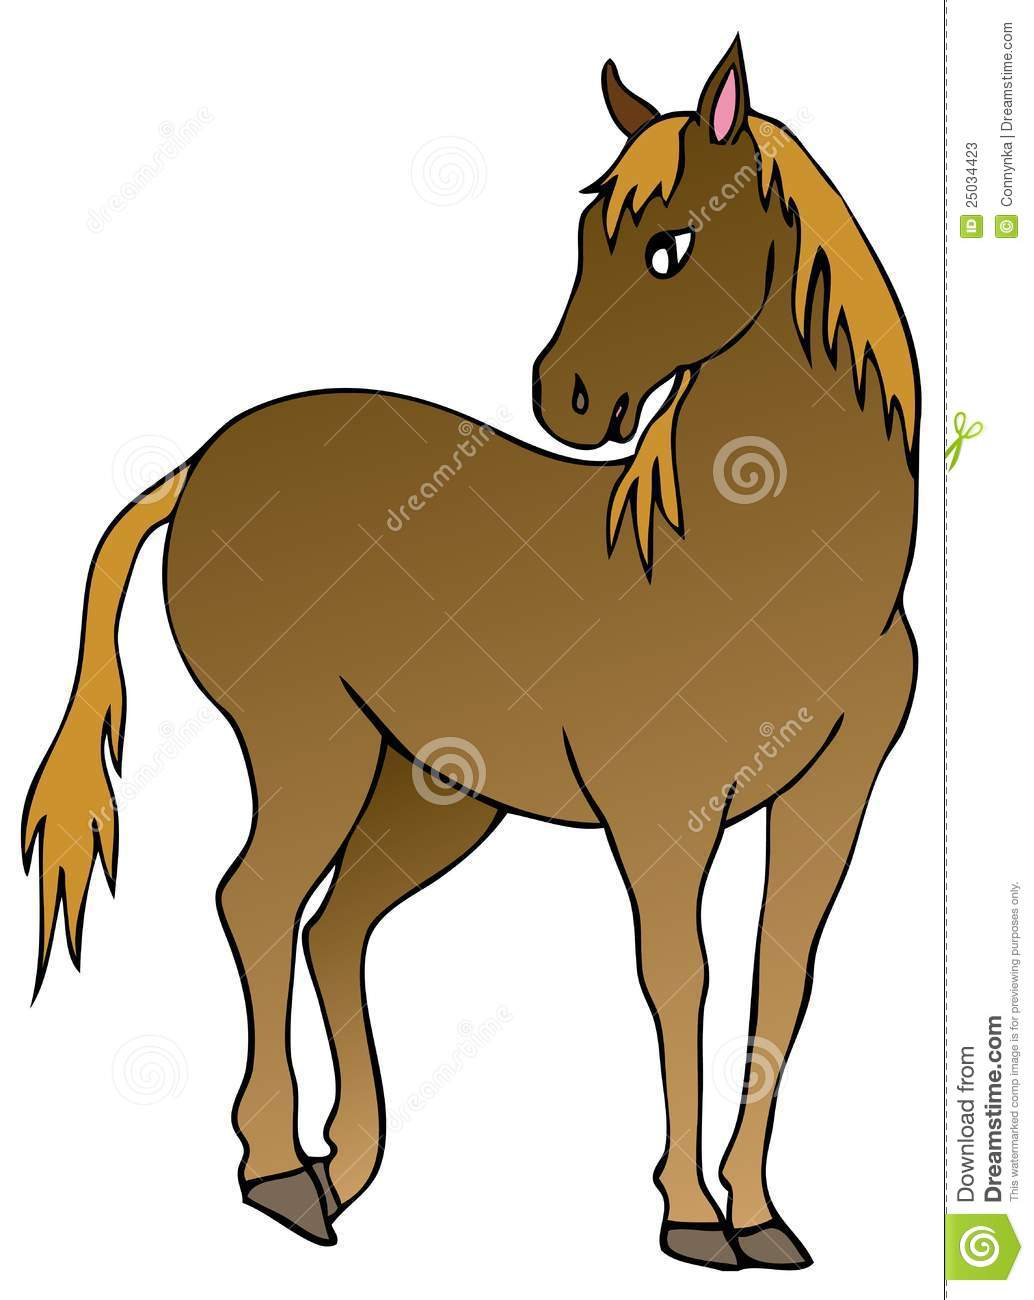 Brown Horse On White Background Stock Photos - Image: 25034423